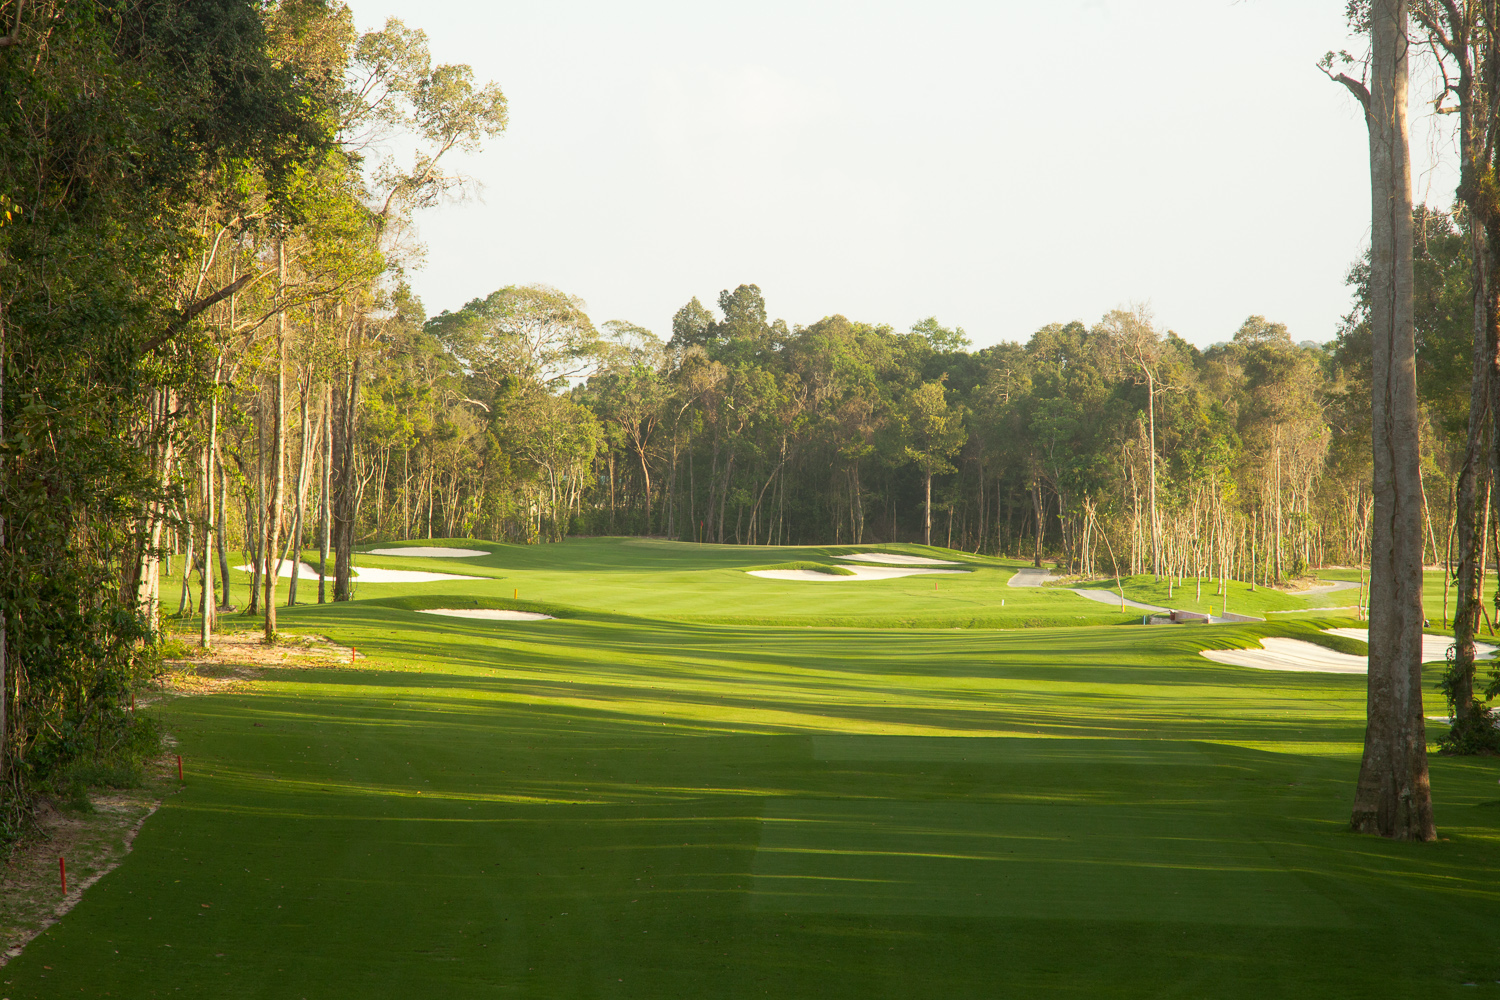 [NEWS] An Incoming Golf Course Within The Capital